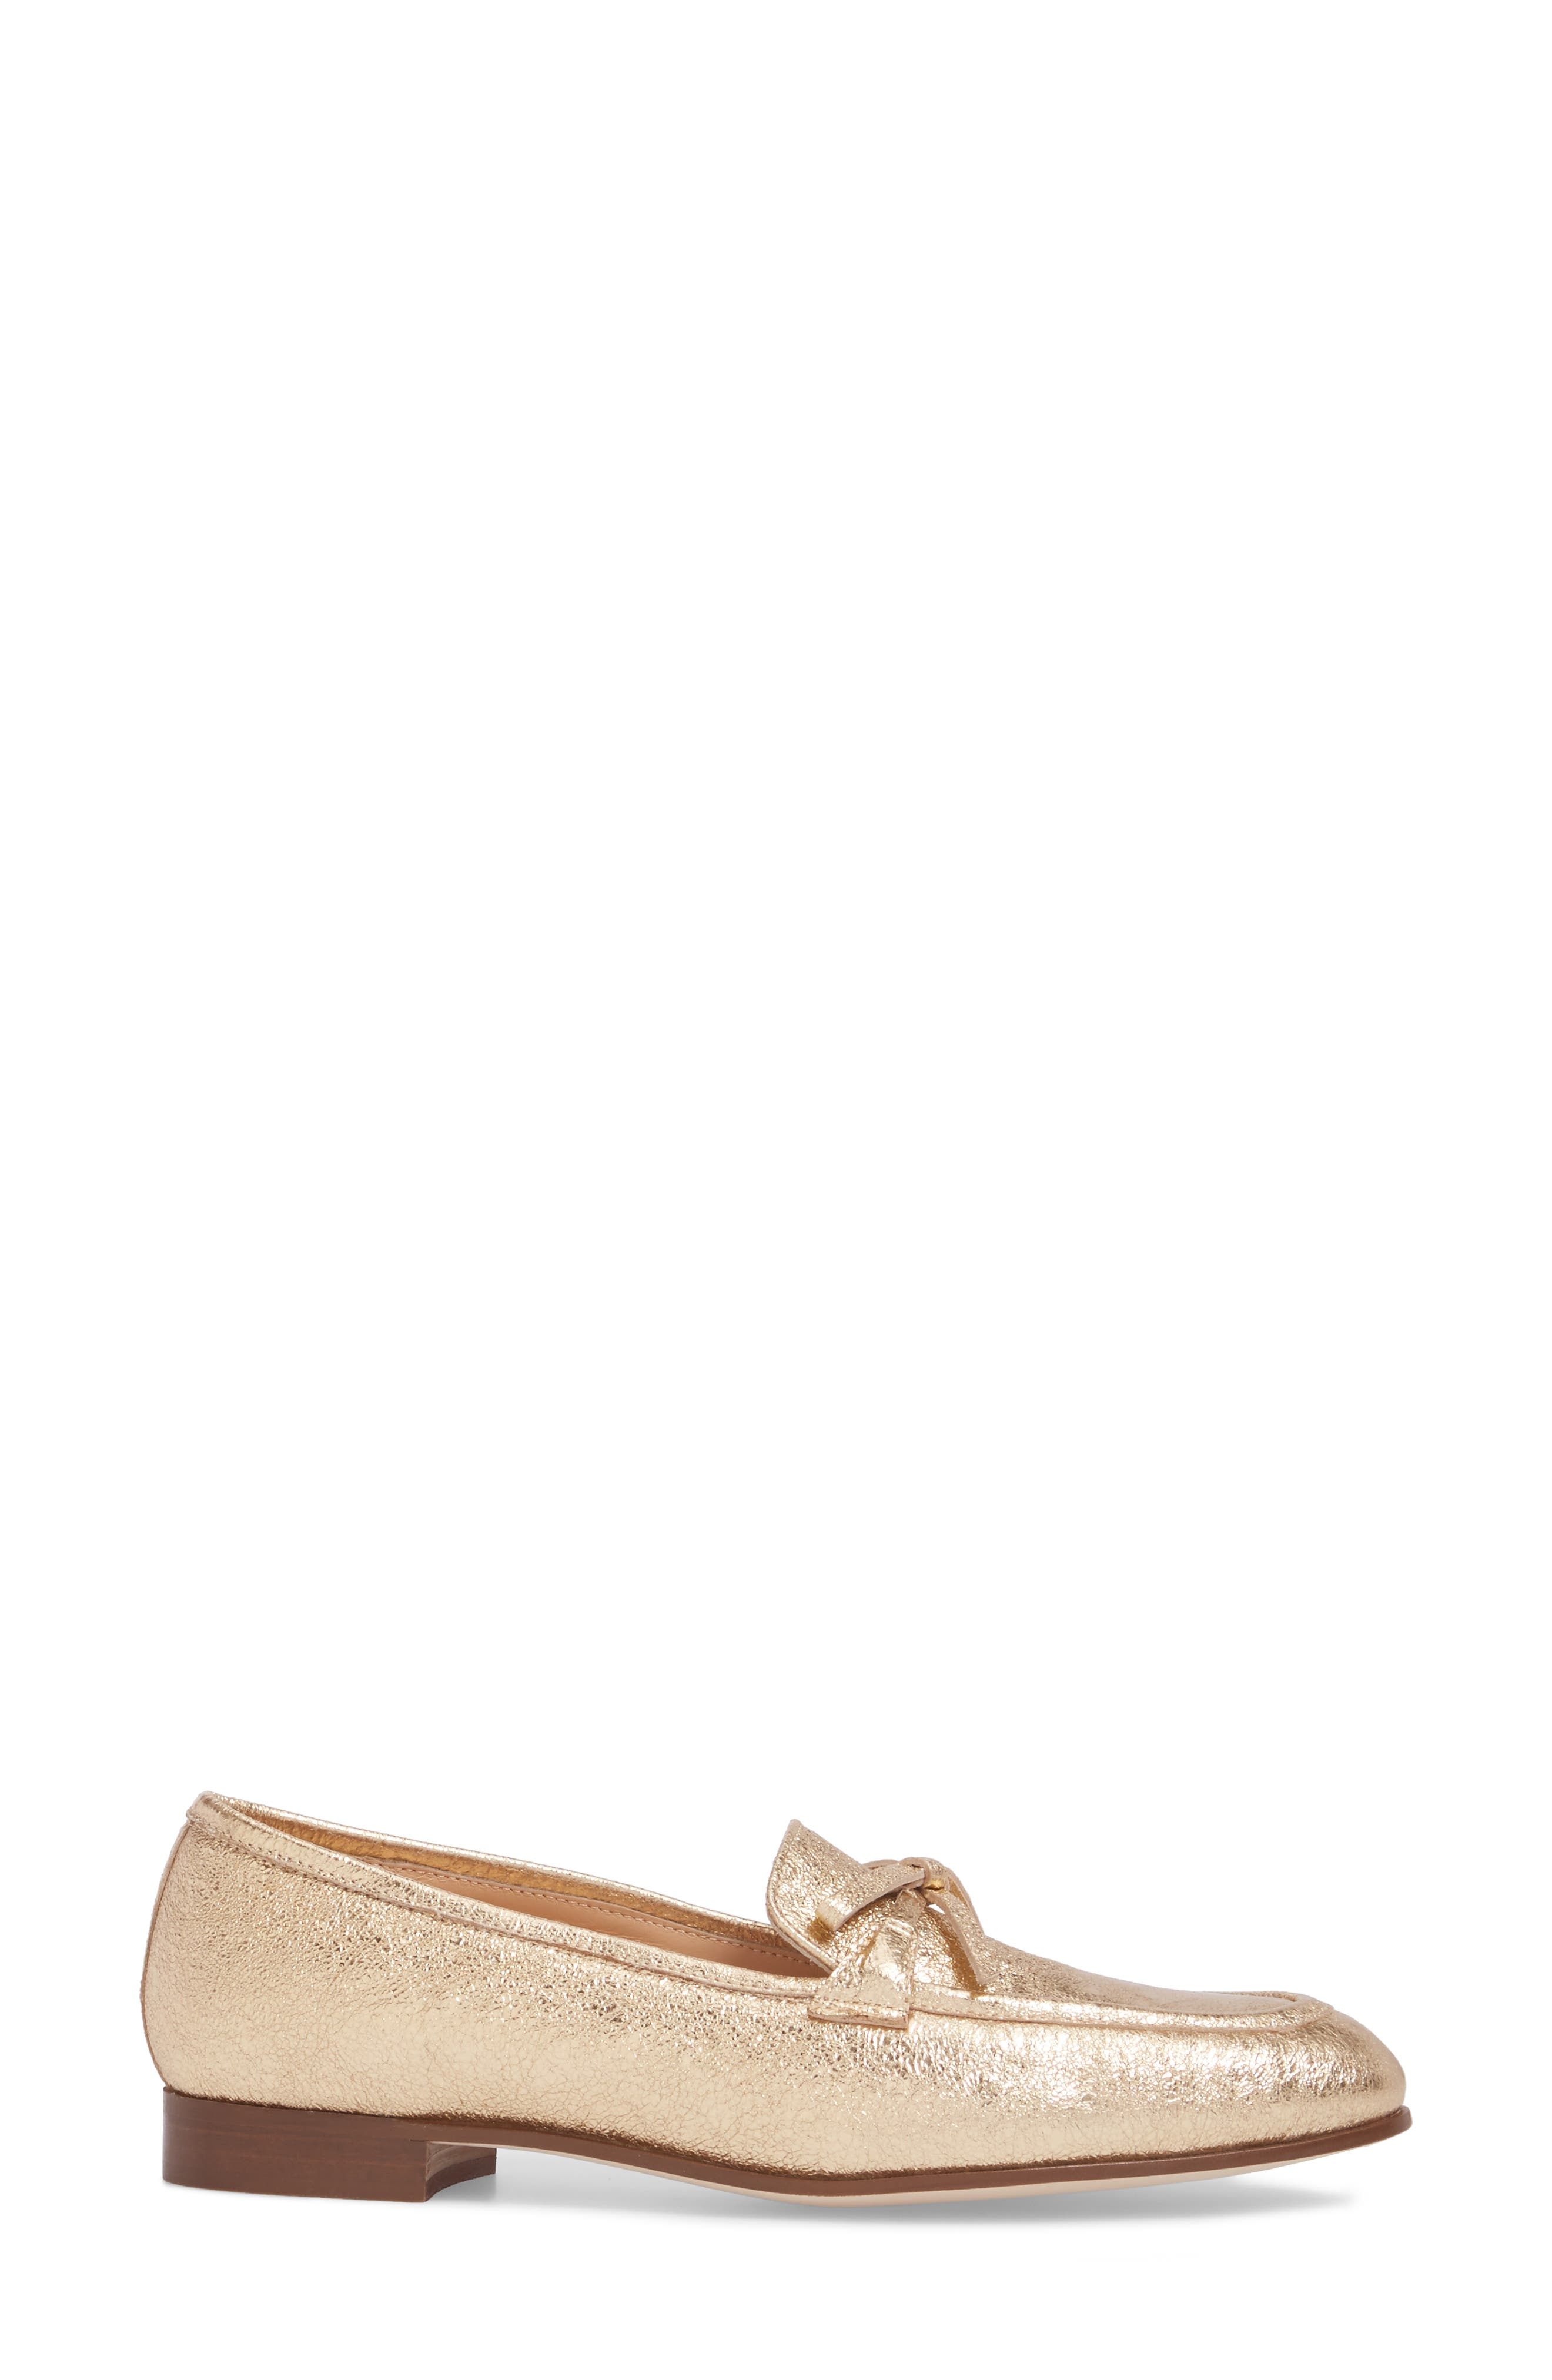 J. Crew Metallic Bow Loafer,                             Alternate thumbnail 3, color,                             710